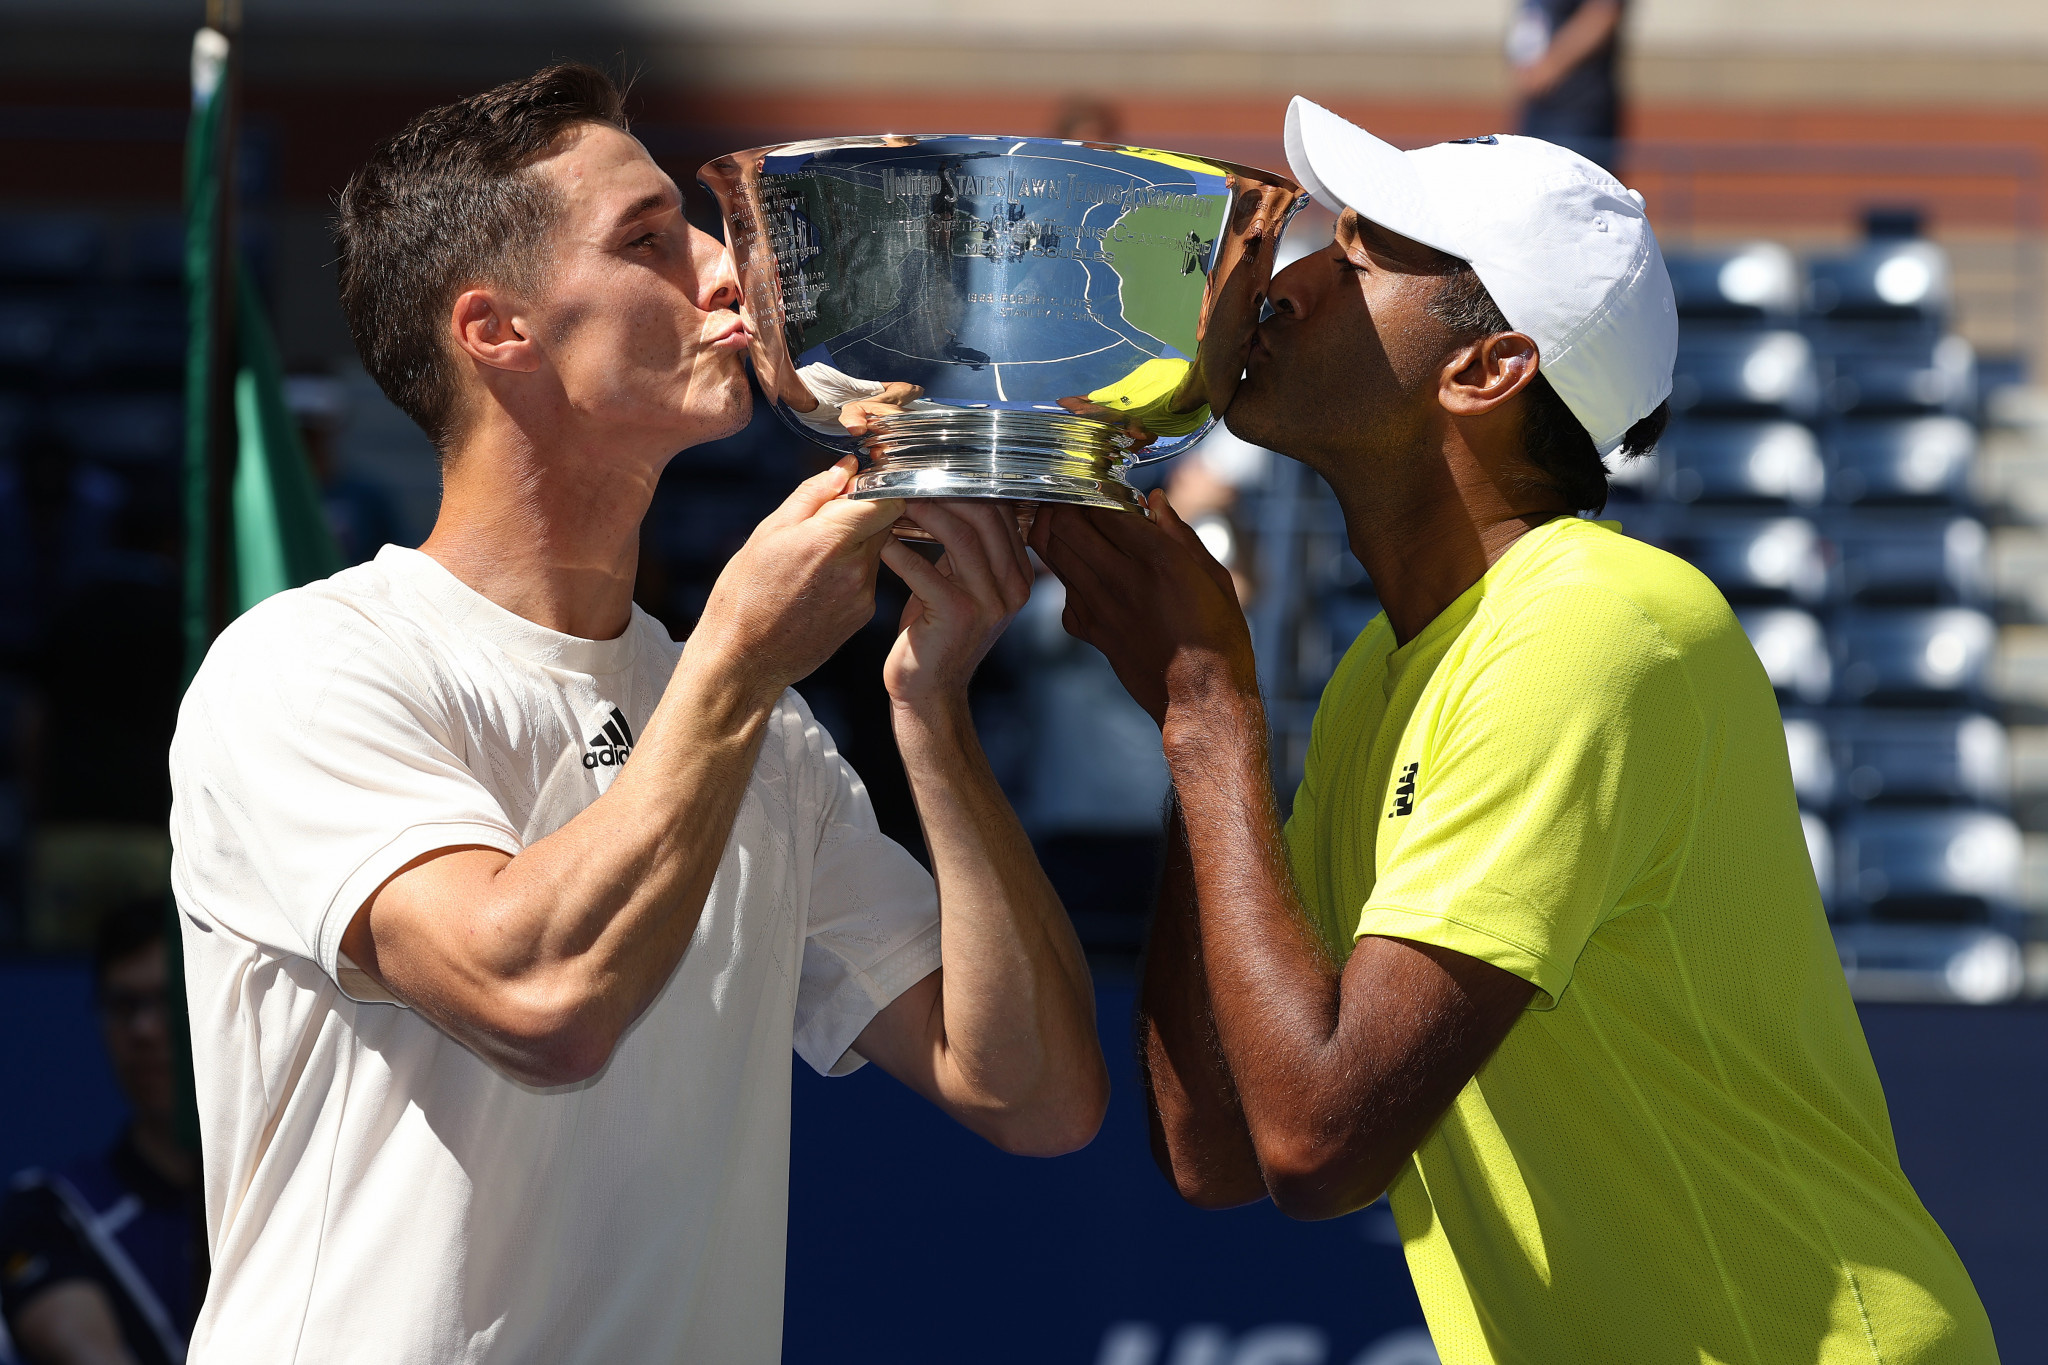 Ram and Salisbury lift first trophy at 2021 US Open